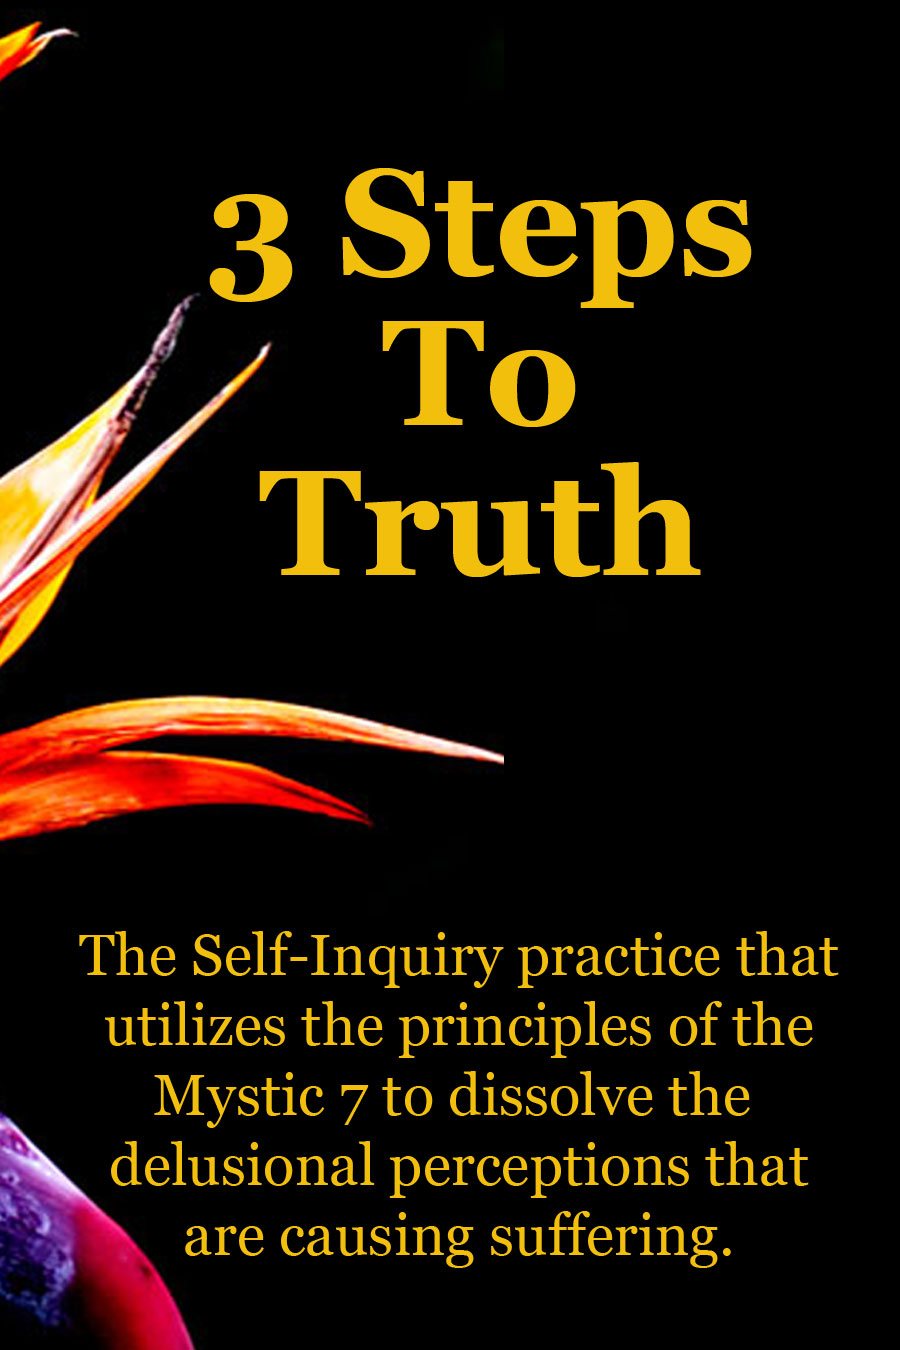 3 Steps to truth are self-inquiry practices that utilize the principles of the mystic 7 to cease suffering